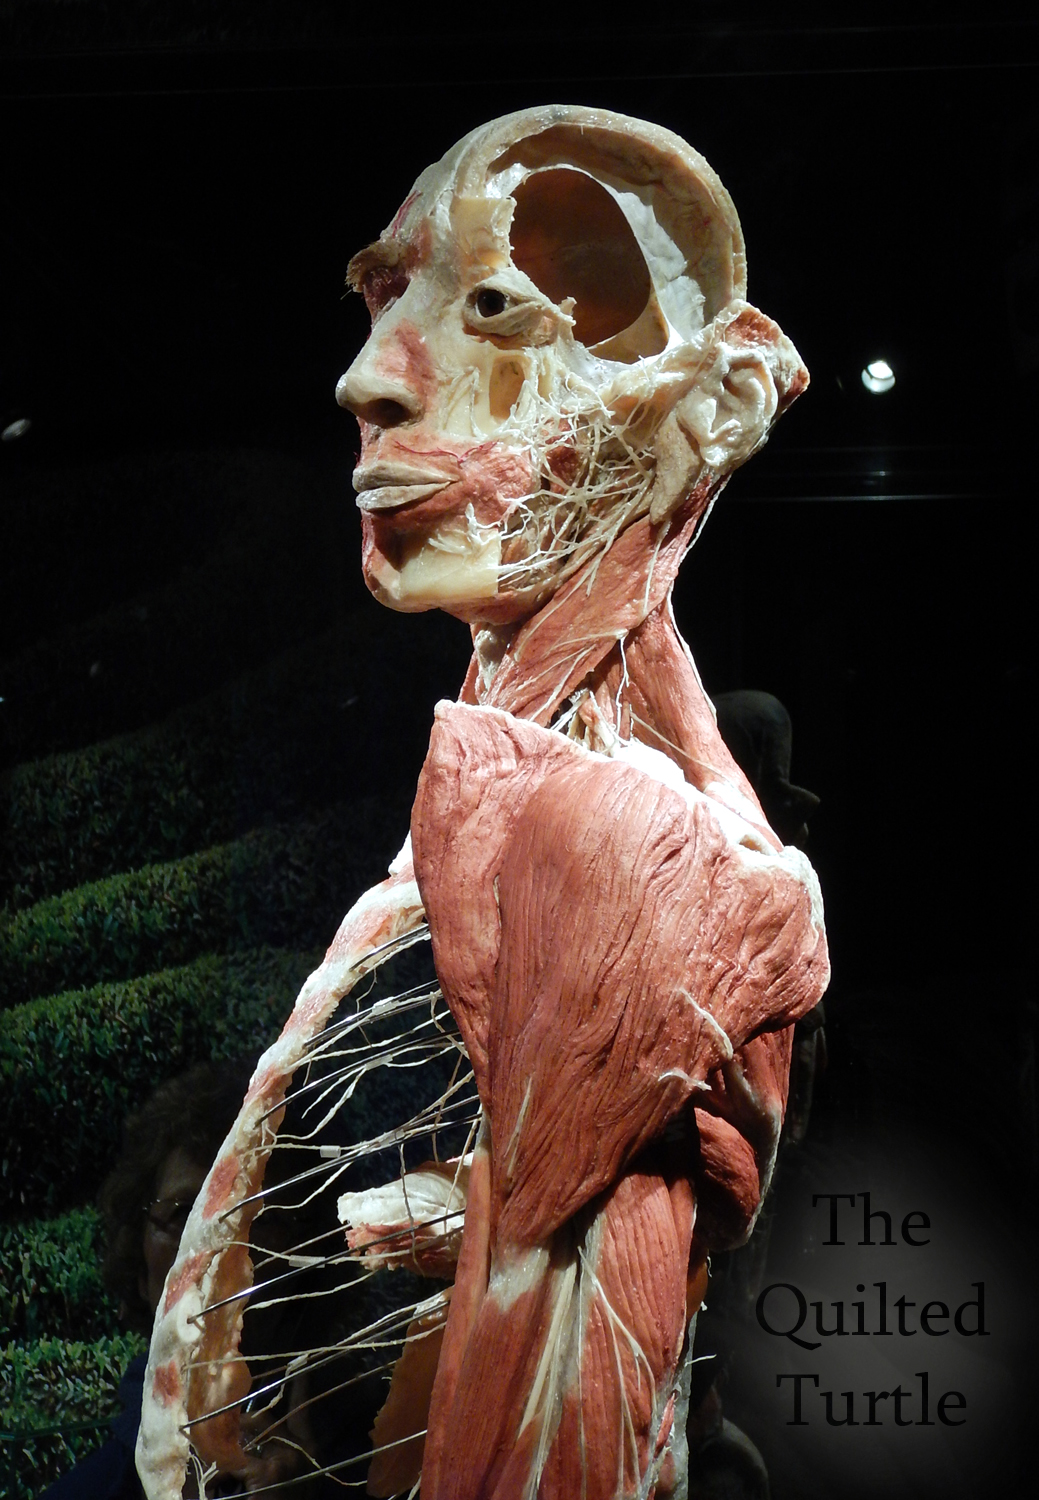 The Quilted Turtle: Body Worlds Amsterdam